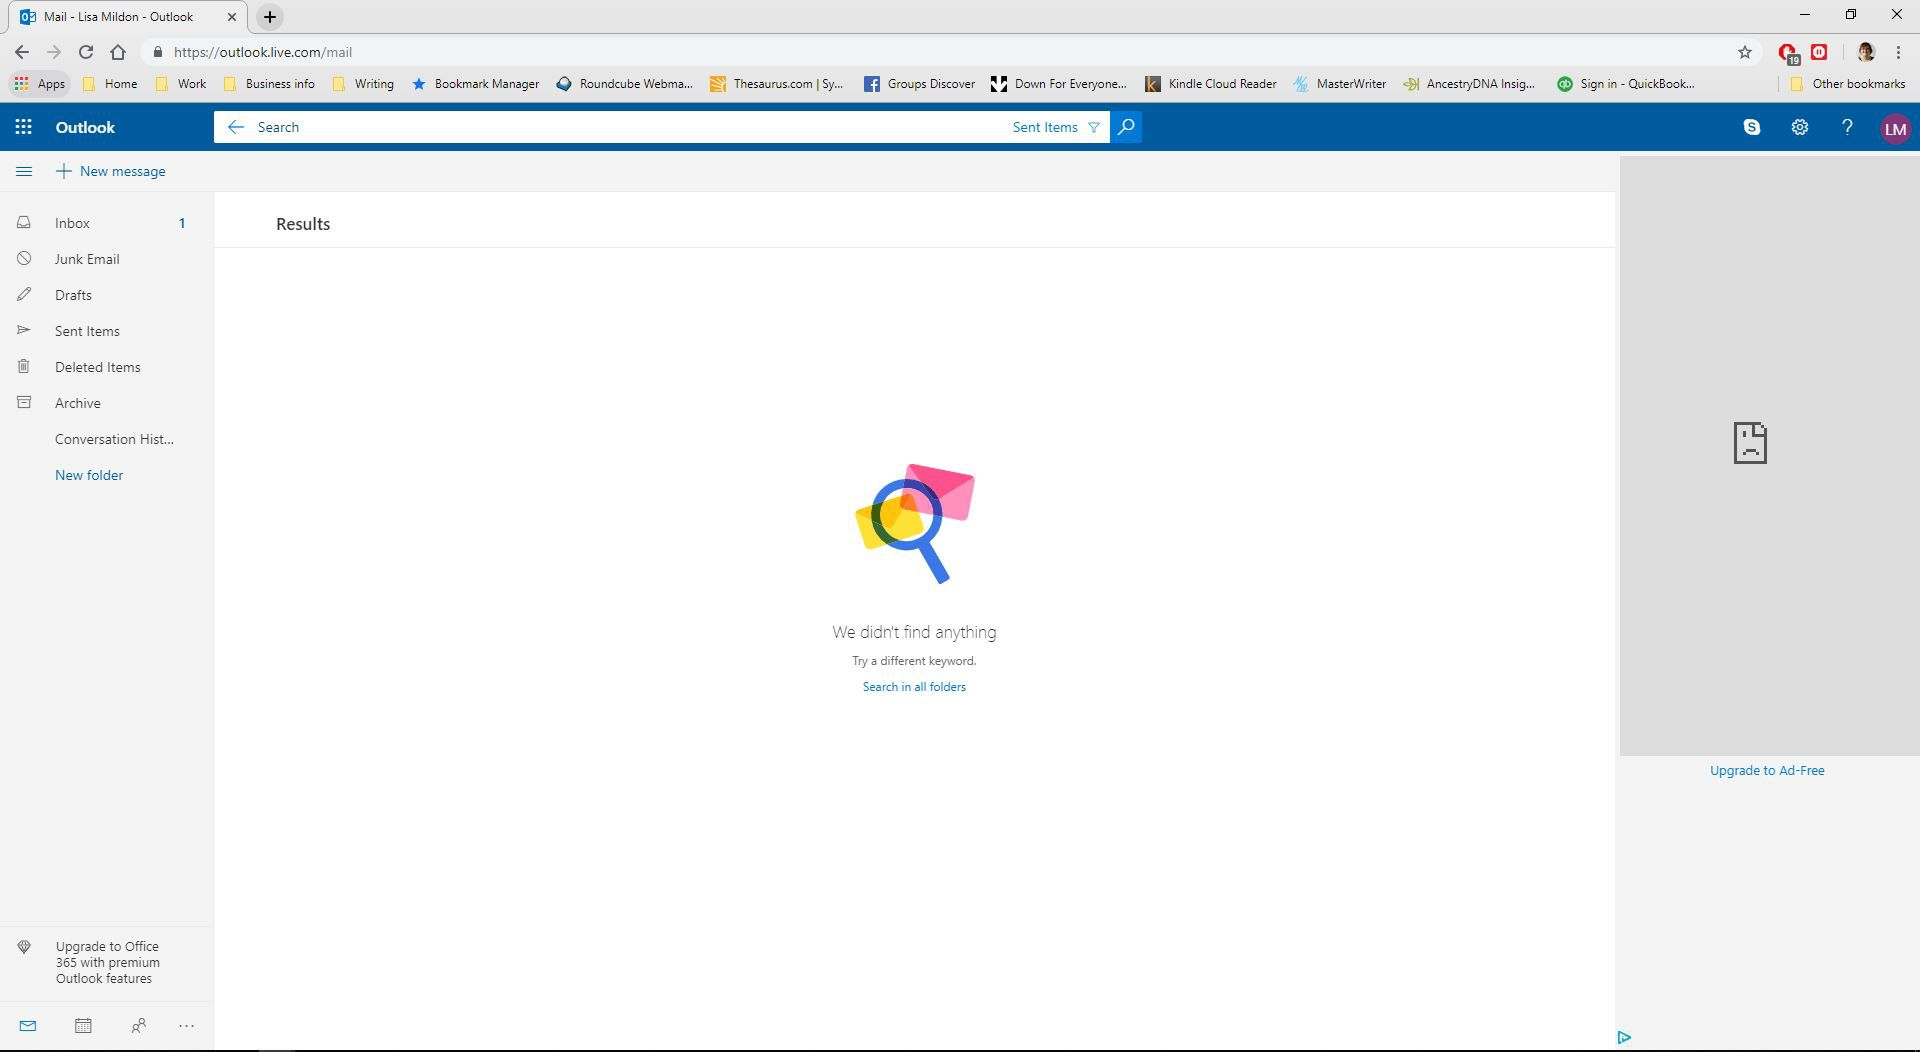 Outlook Online interface showing nothing could be found during a search.